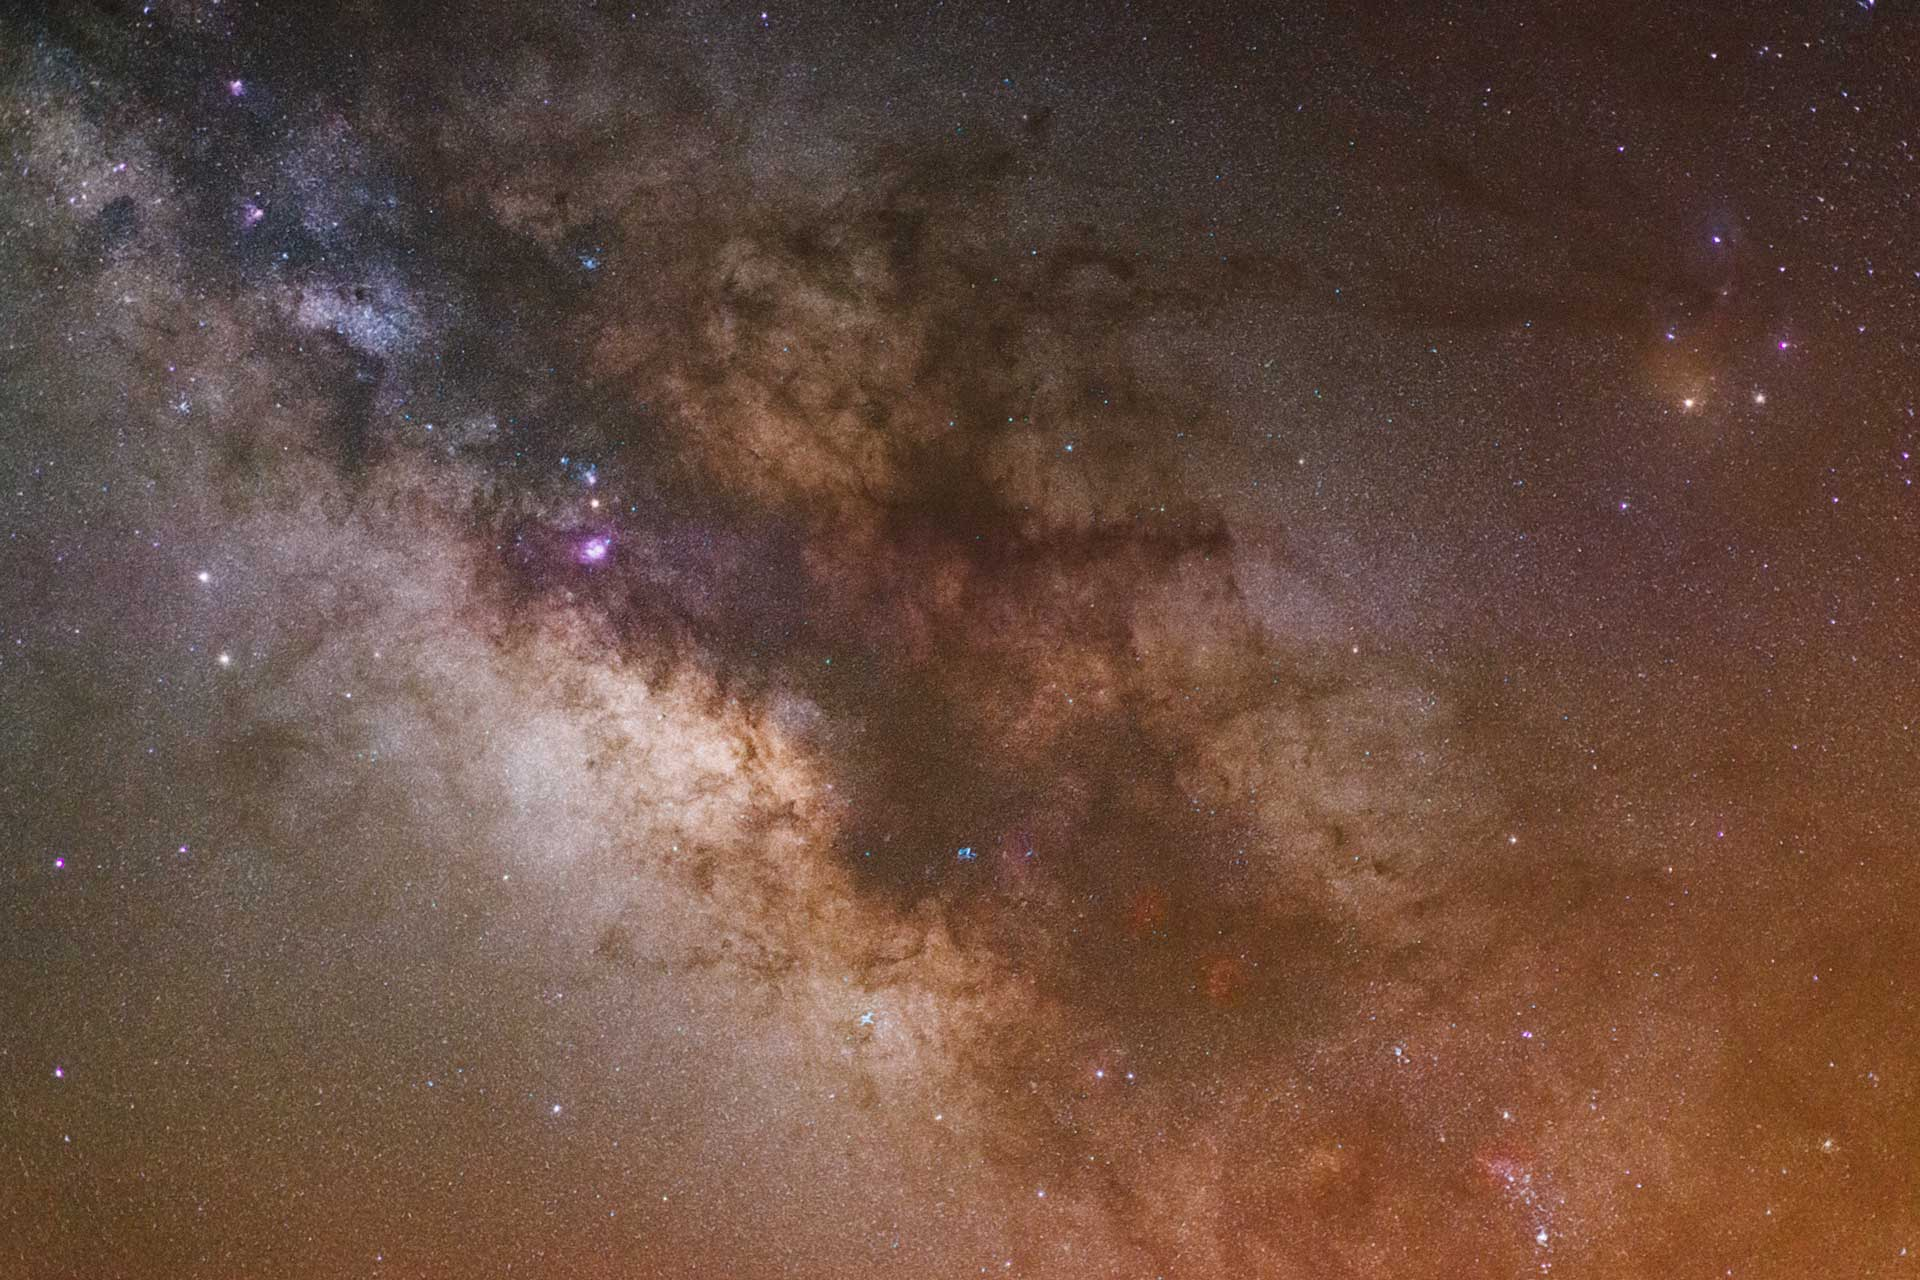 Center of Milky Way Galaxy, gas emission clouds, nebulae and Scorpio constellation